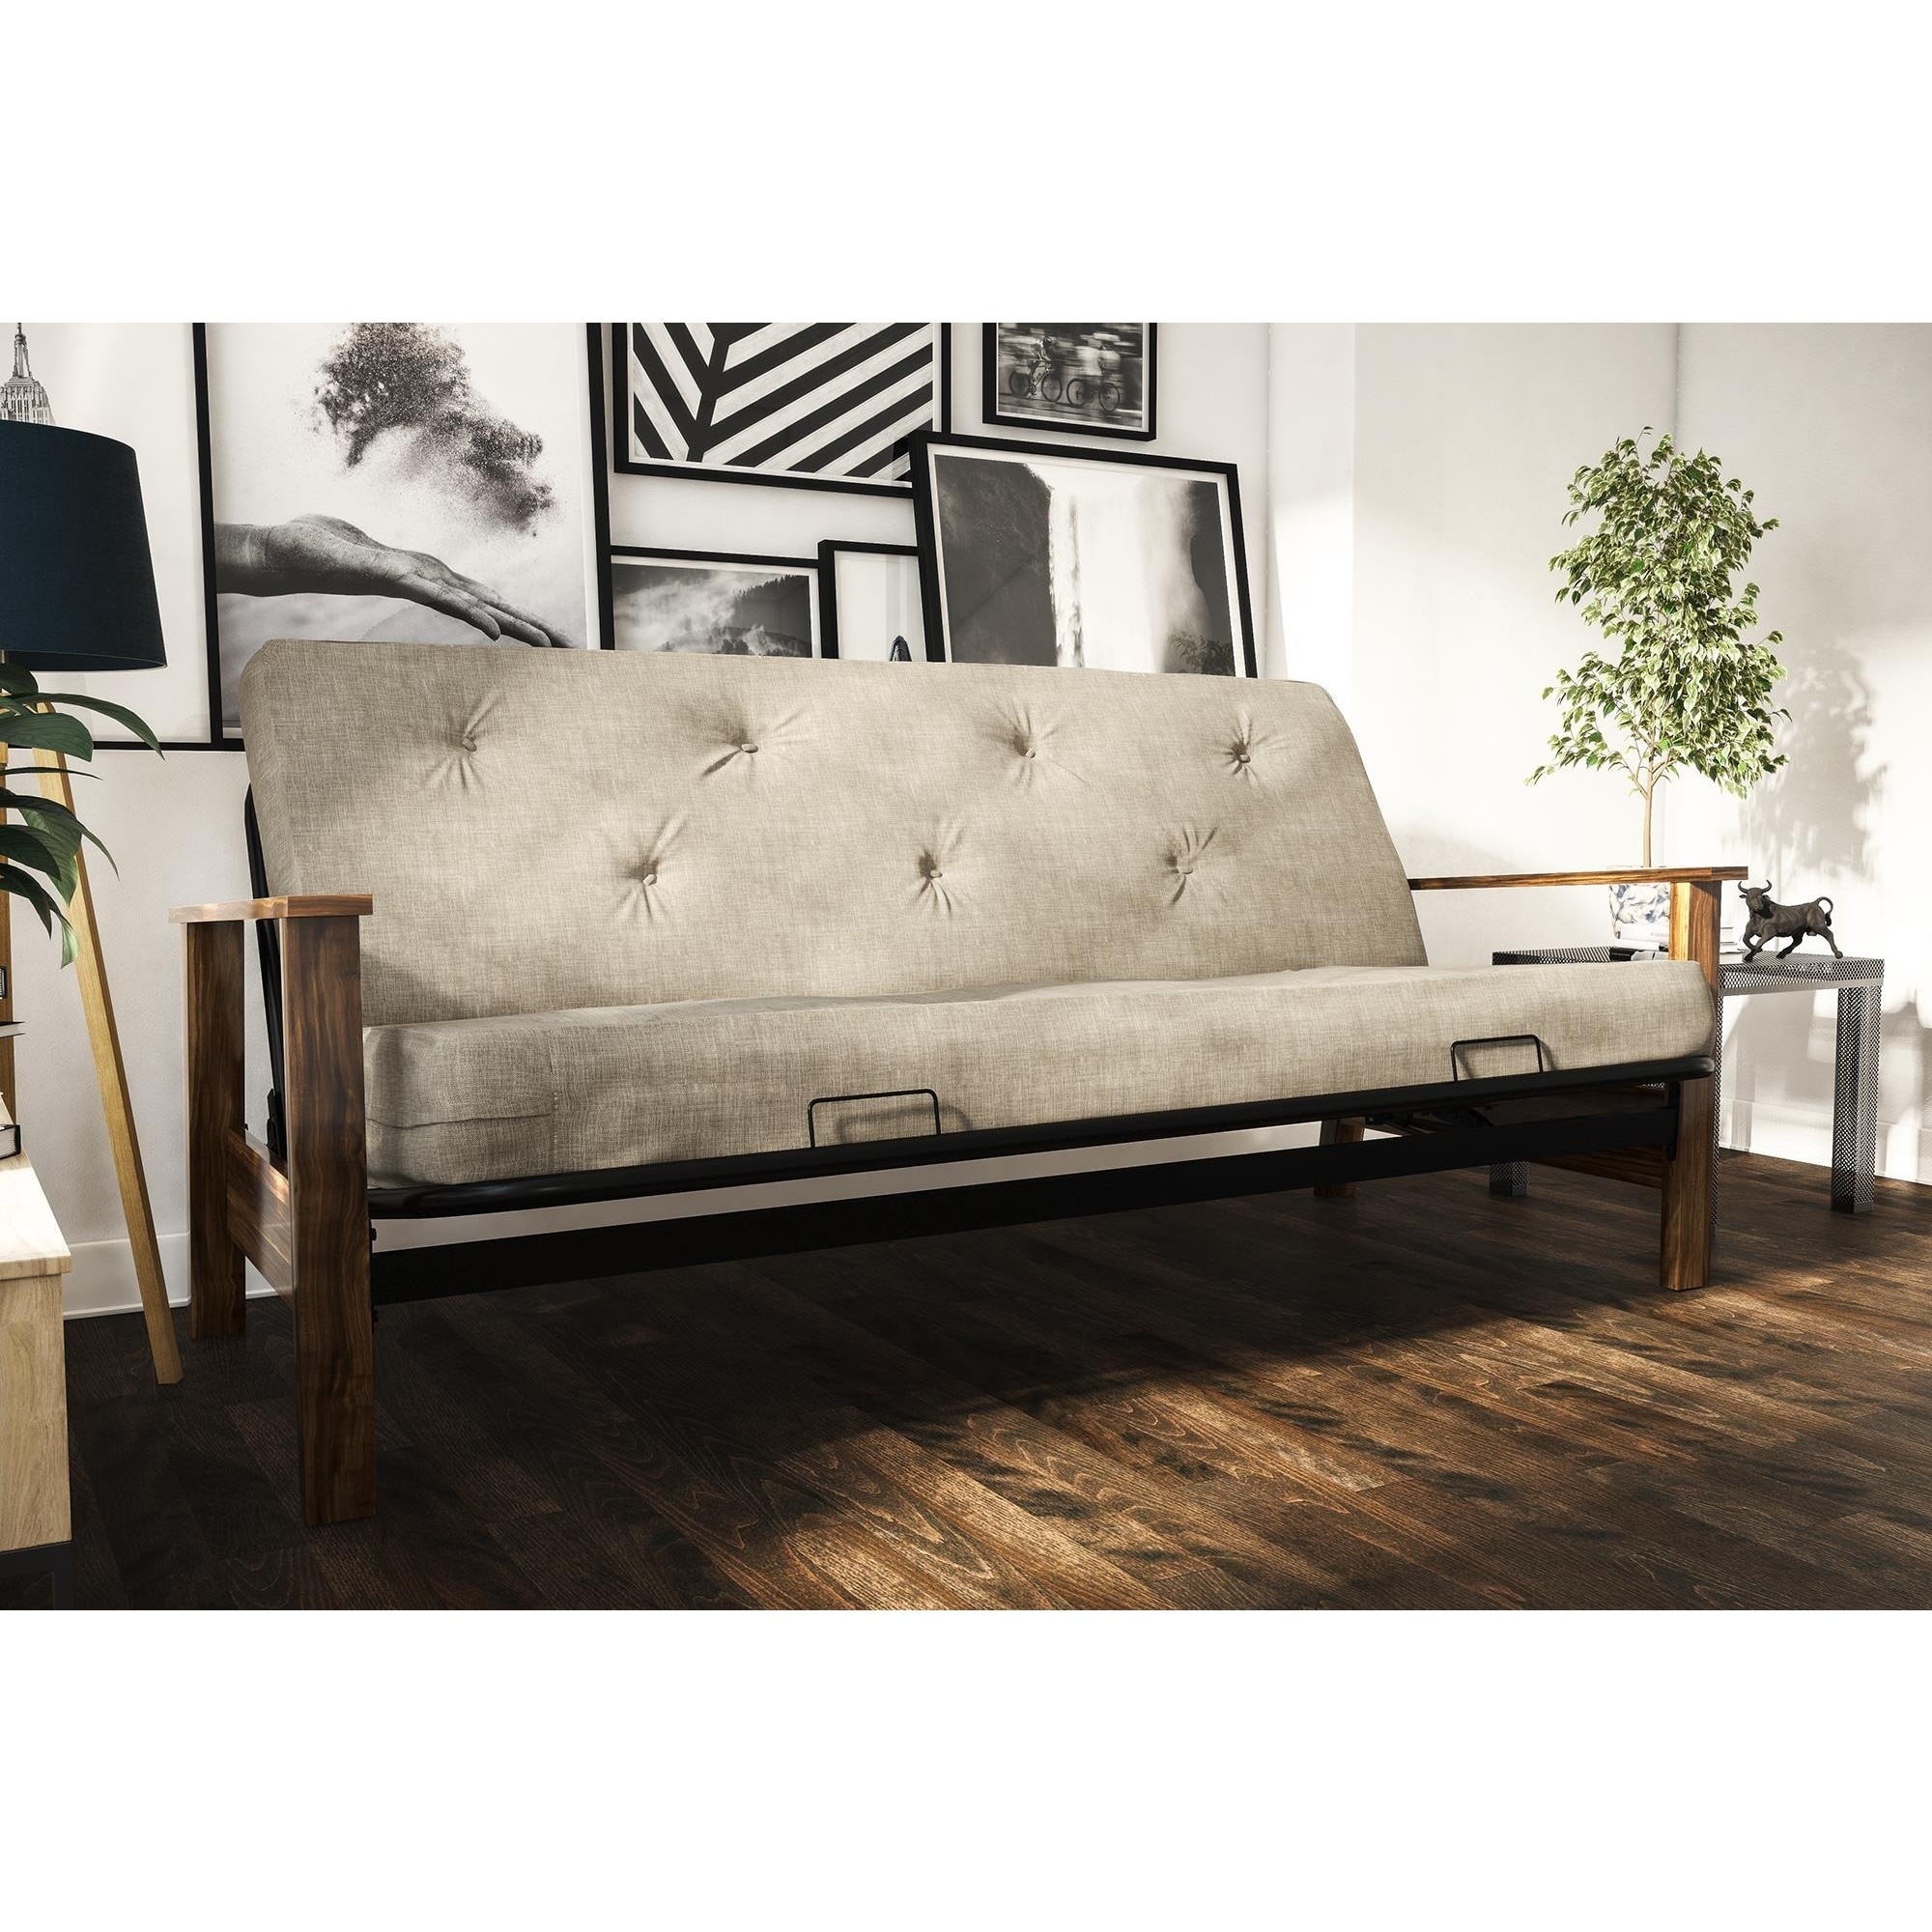 DHP Bergen Wood Arm Futon with 6 inch Coil Linen Mattress Free